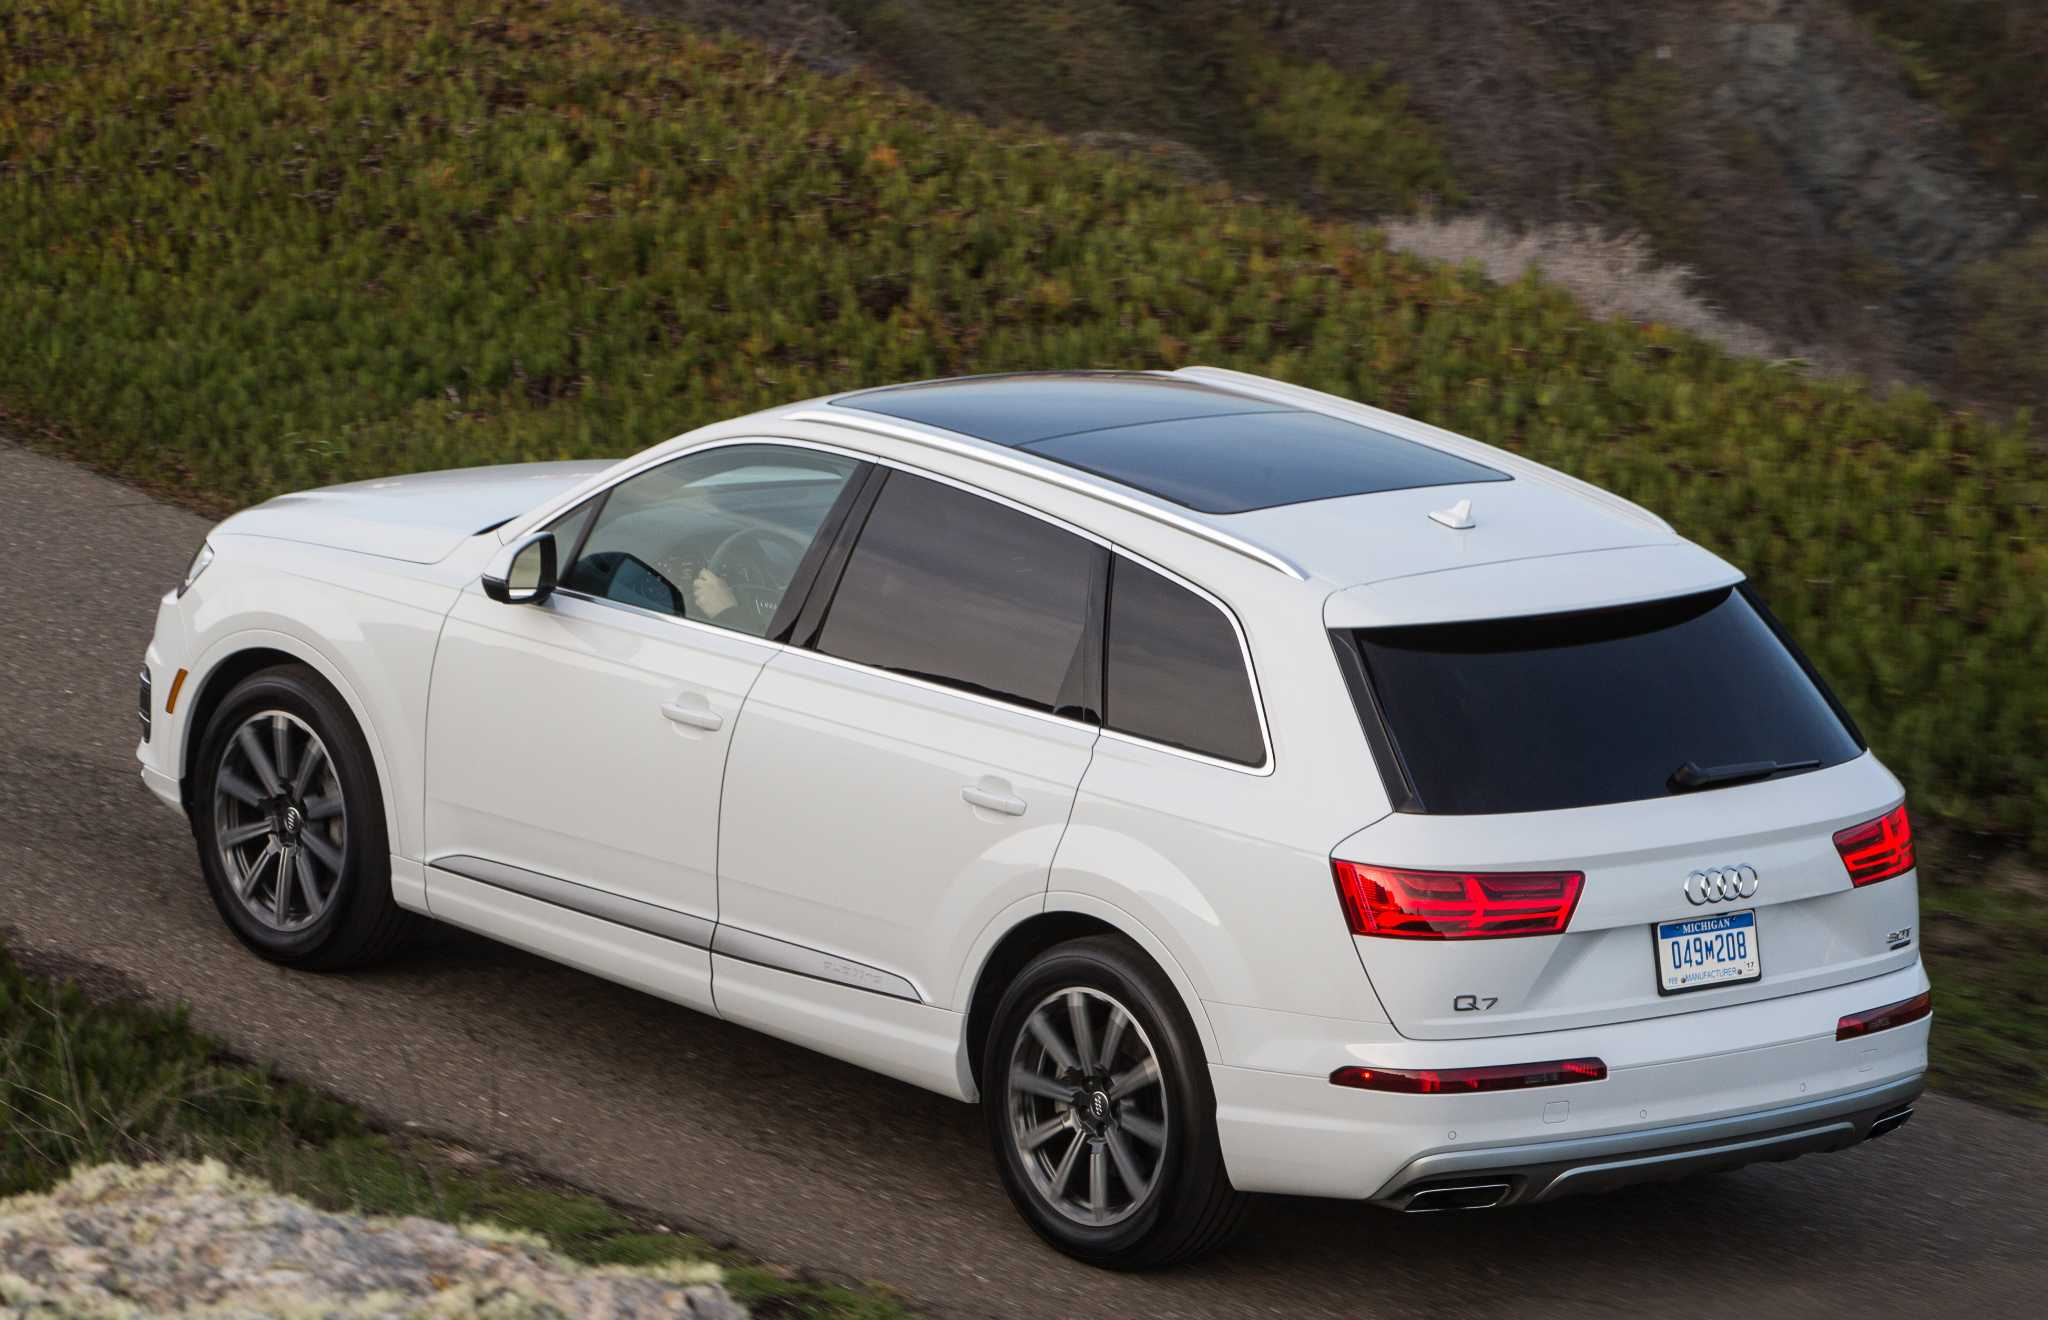 Audi redesigns three-row Q7 crossover for 2017